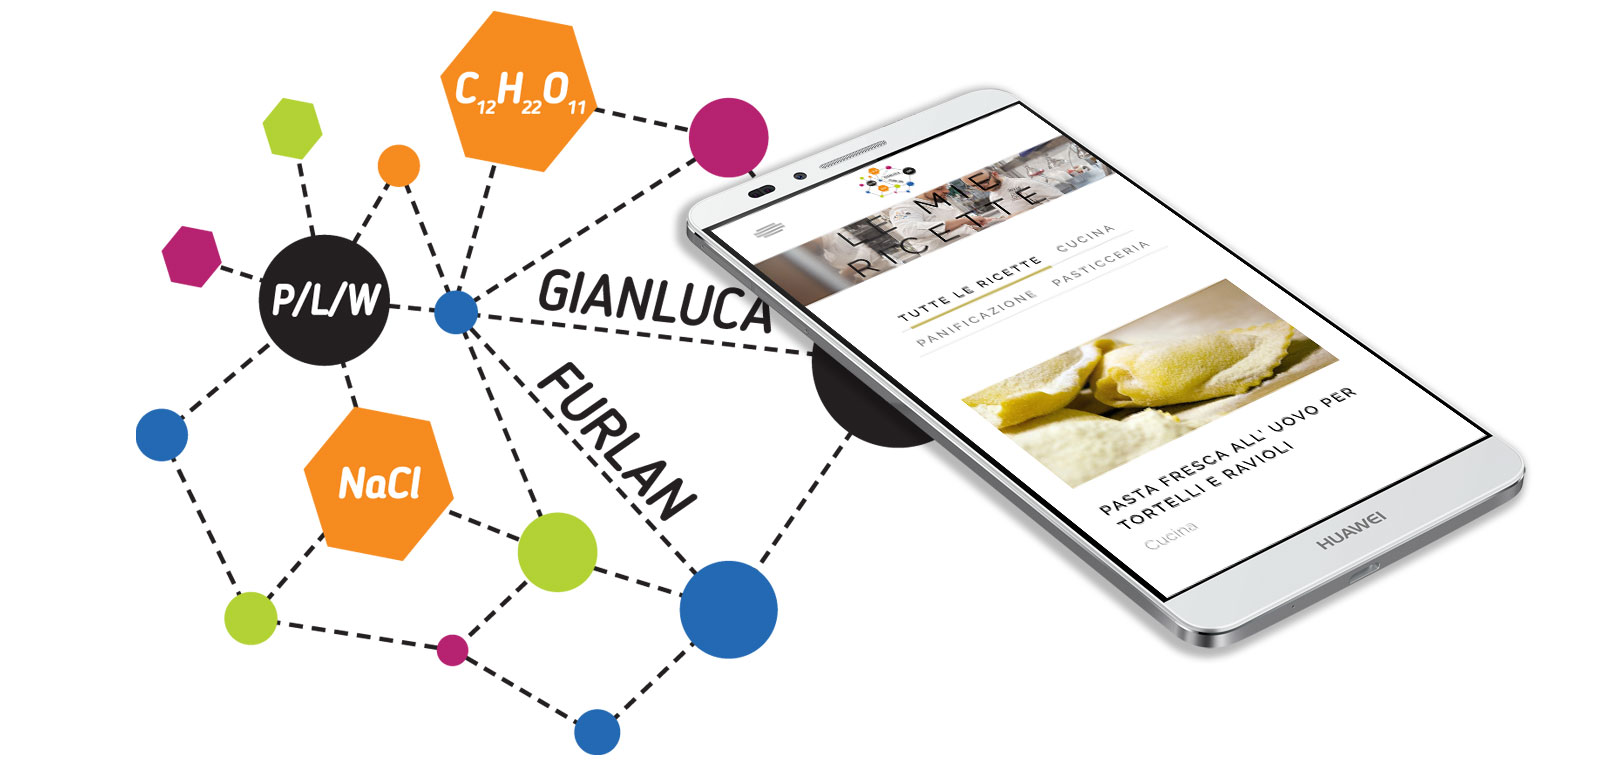 Web site: GianLuca Furlan